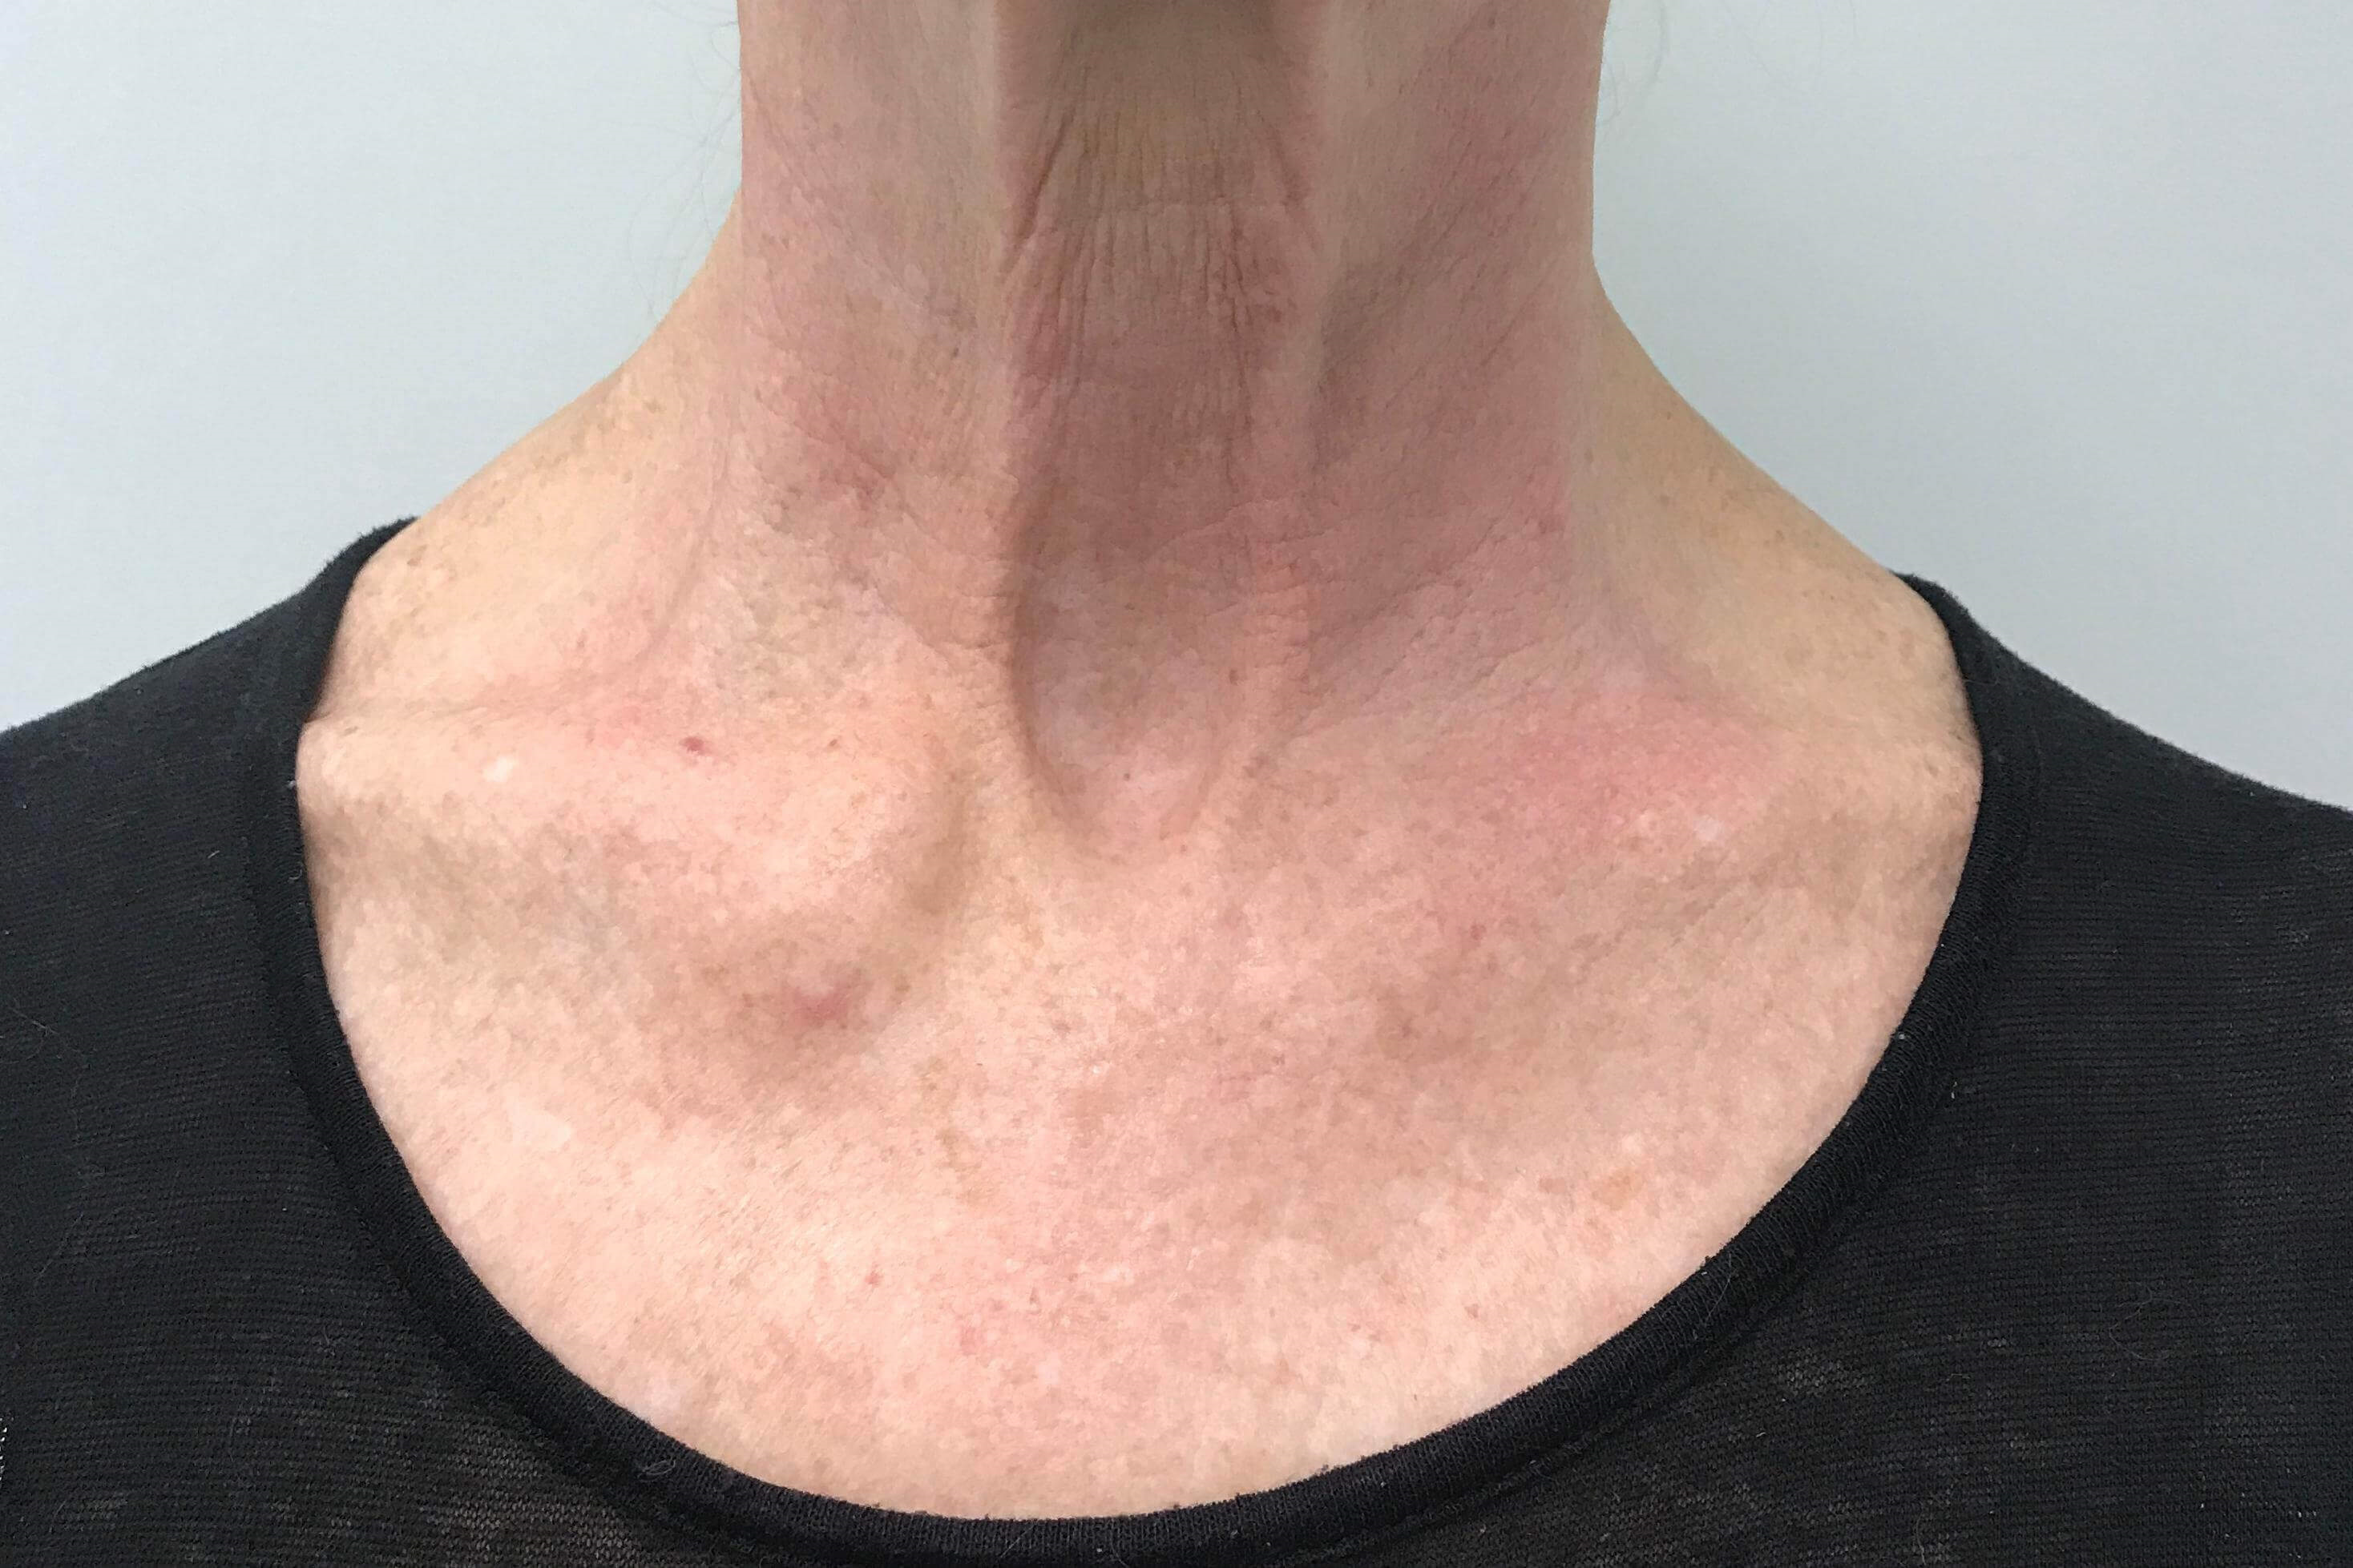 IPL and 1540 Laser Resurfacing After IPL/Laser Resurfacing